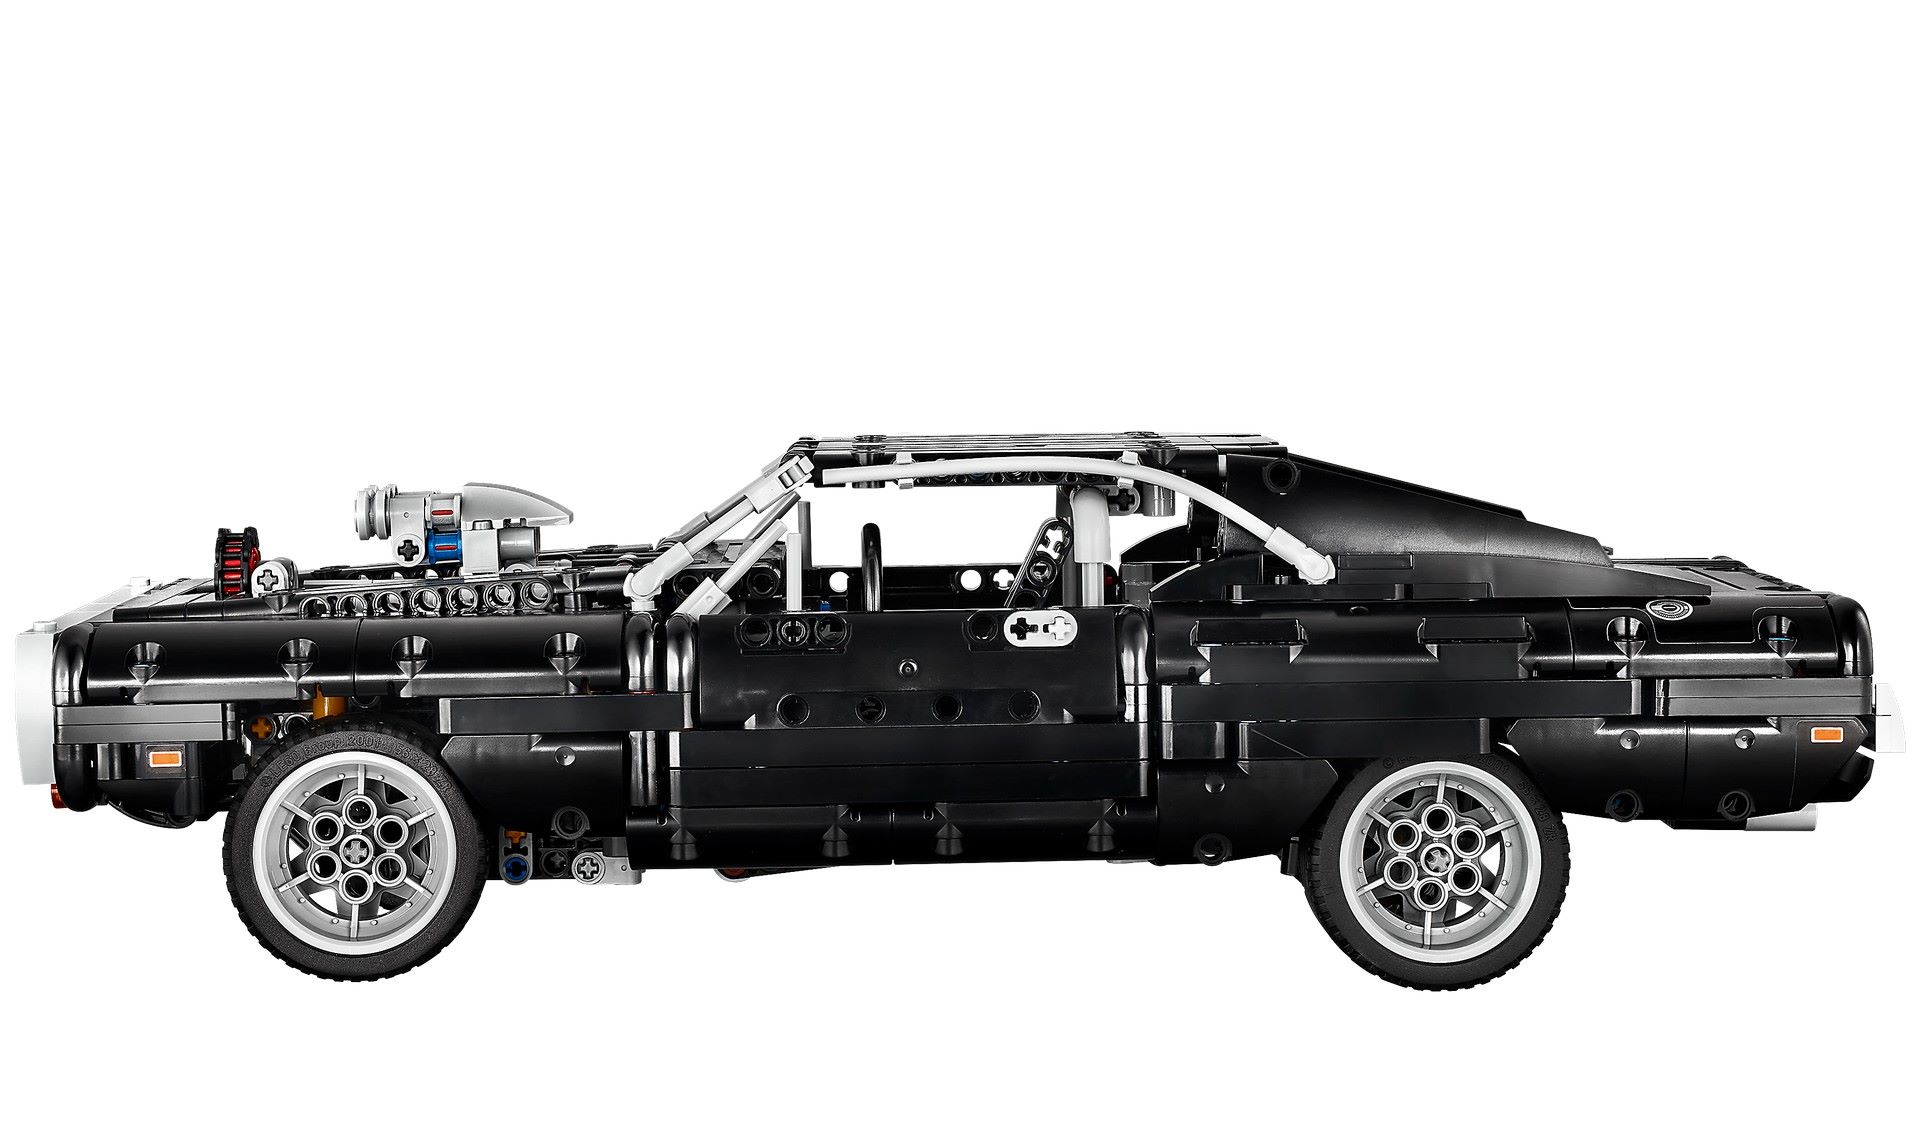 Lego-Dodge-Charger-10